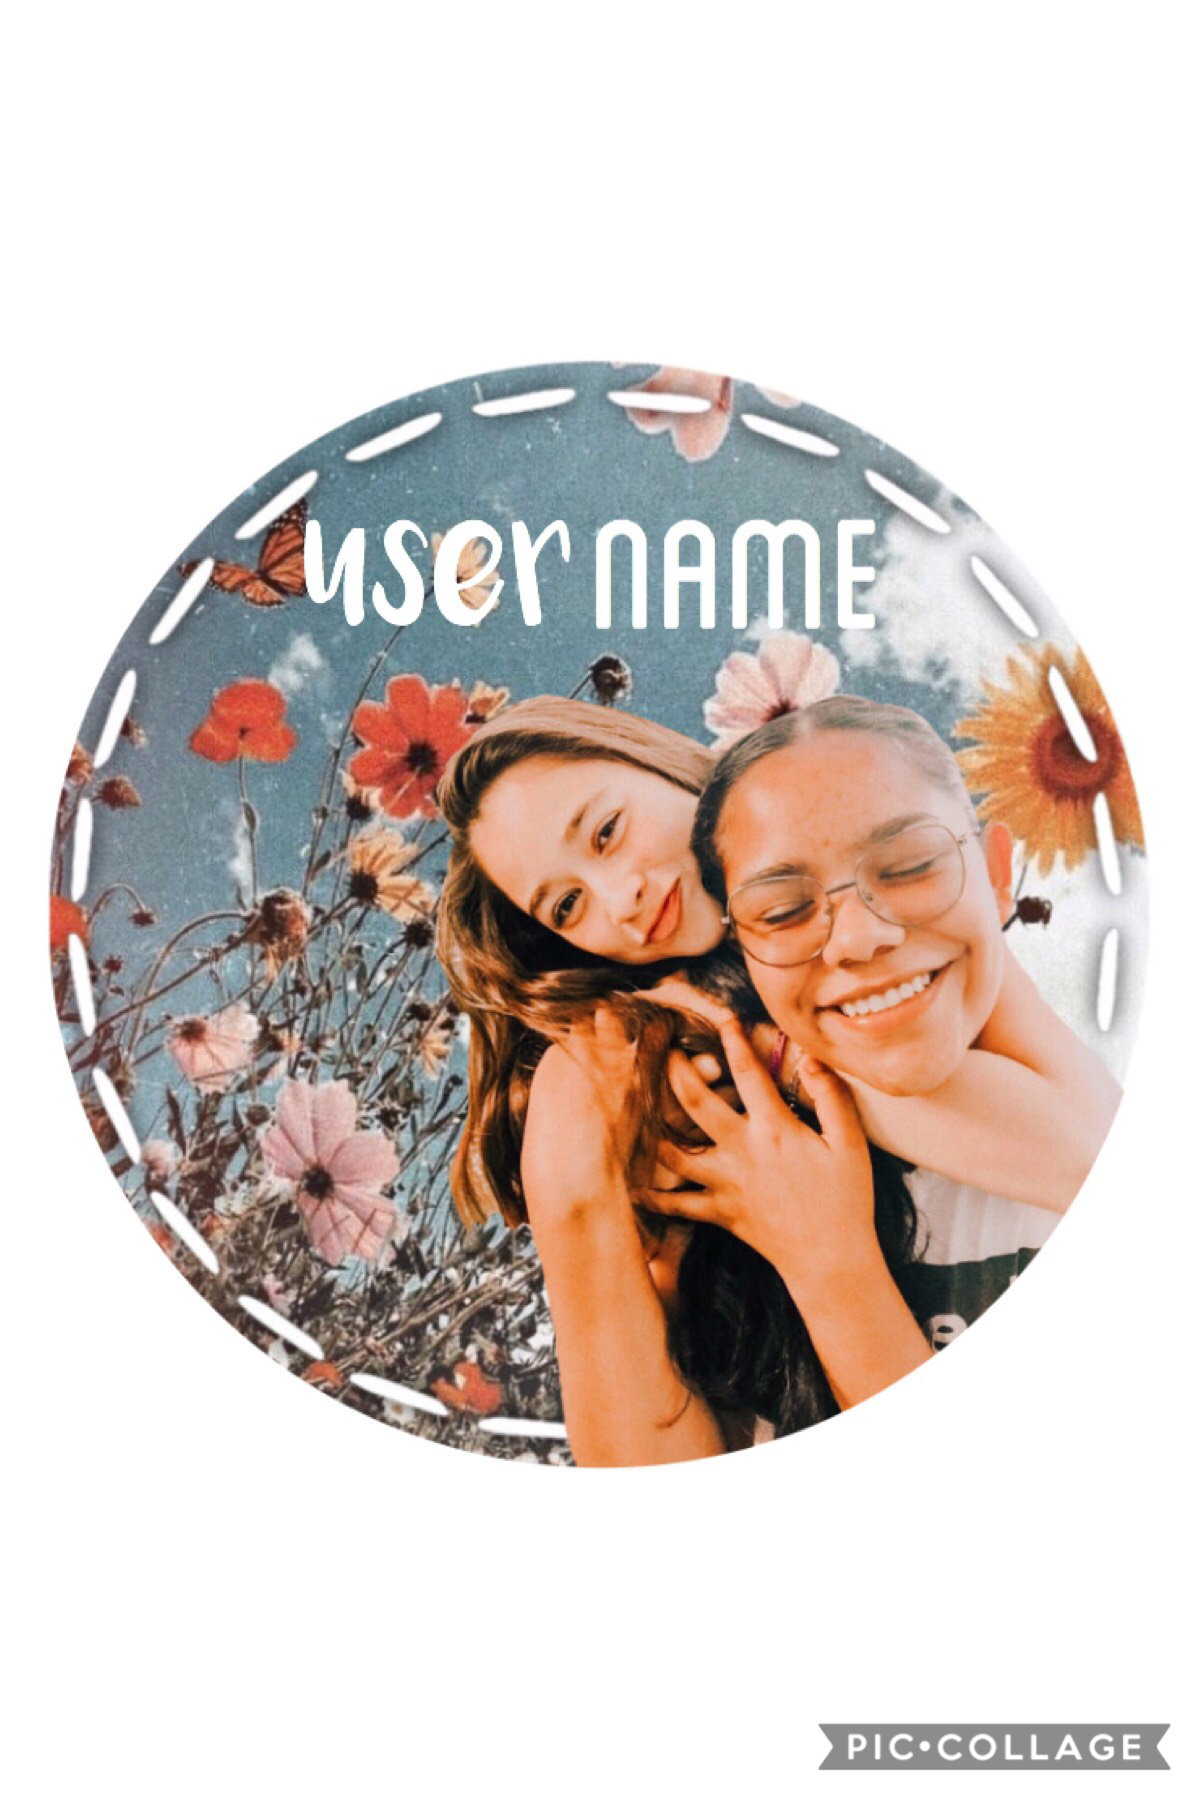 tap  🦋 if you stunning creations of god want this icon just tell me and ill be more than happy to put your username on it 🦋